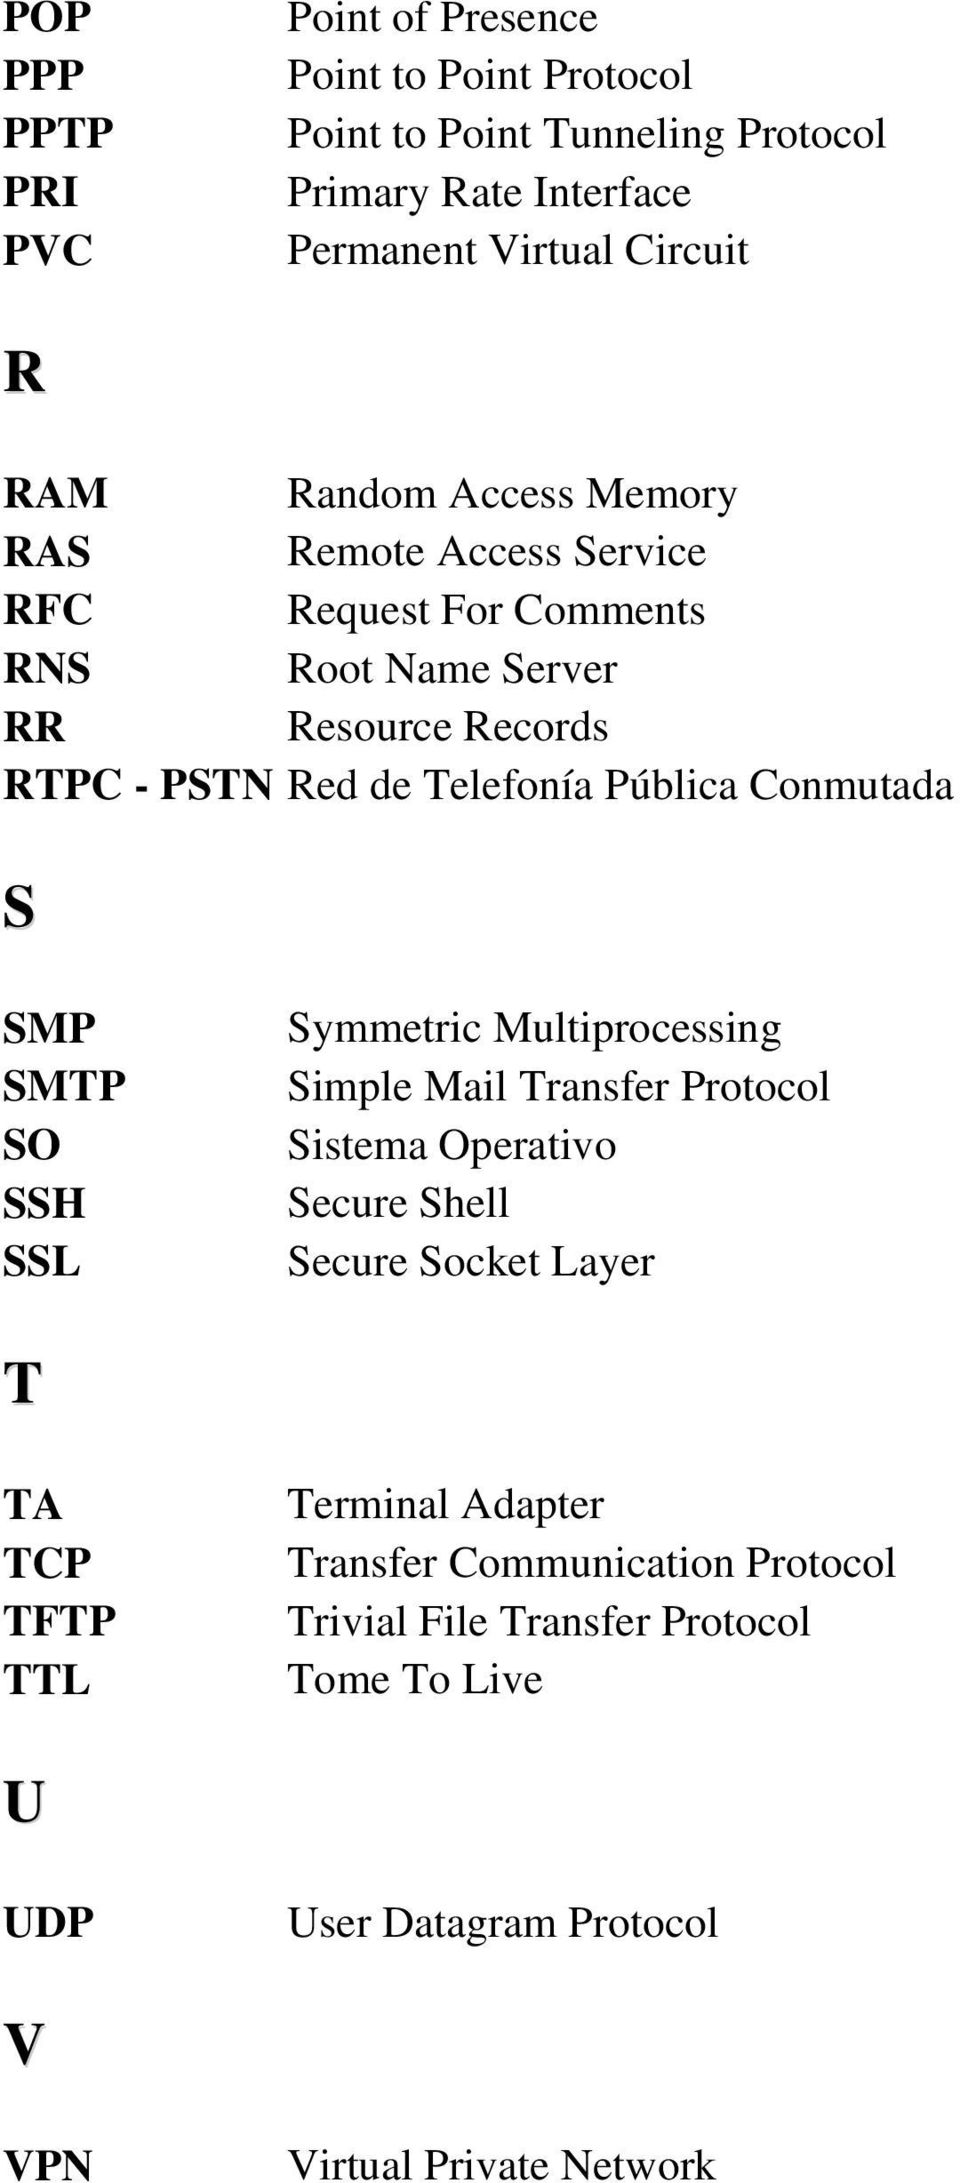 Conmutada S SMP SMTP SO SSH SSL Symmetric Multiprocessing Simple Mail Transfer Protocol Sistema Operativo Secure Shell Secure Socket Layer T TA TCP TFTP